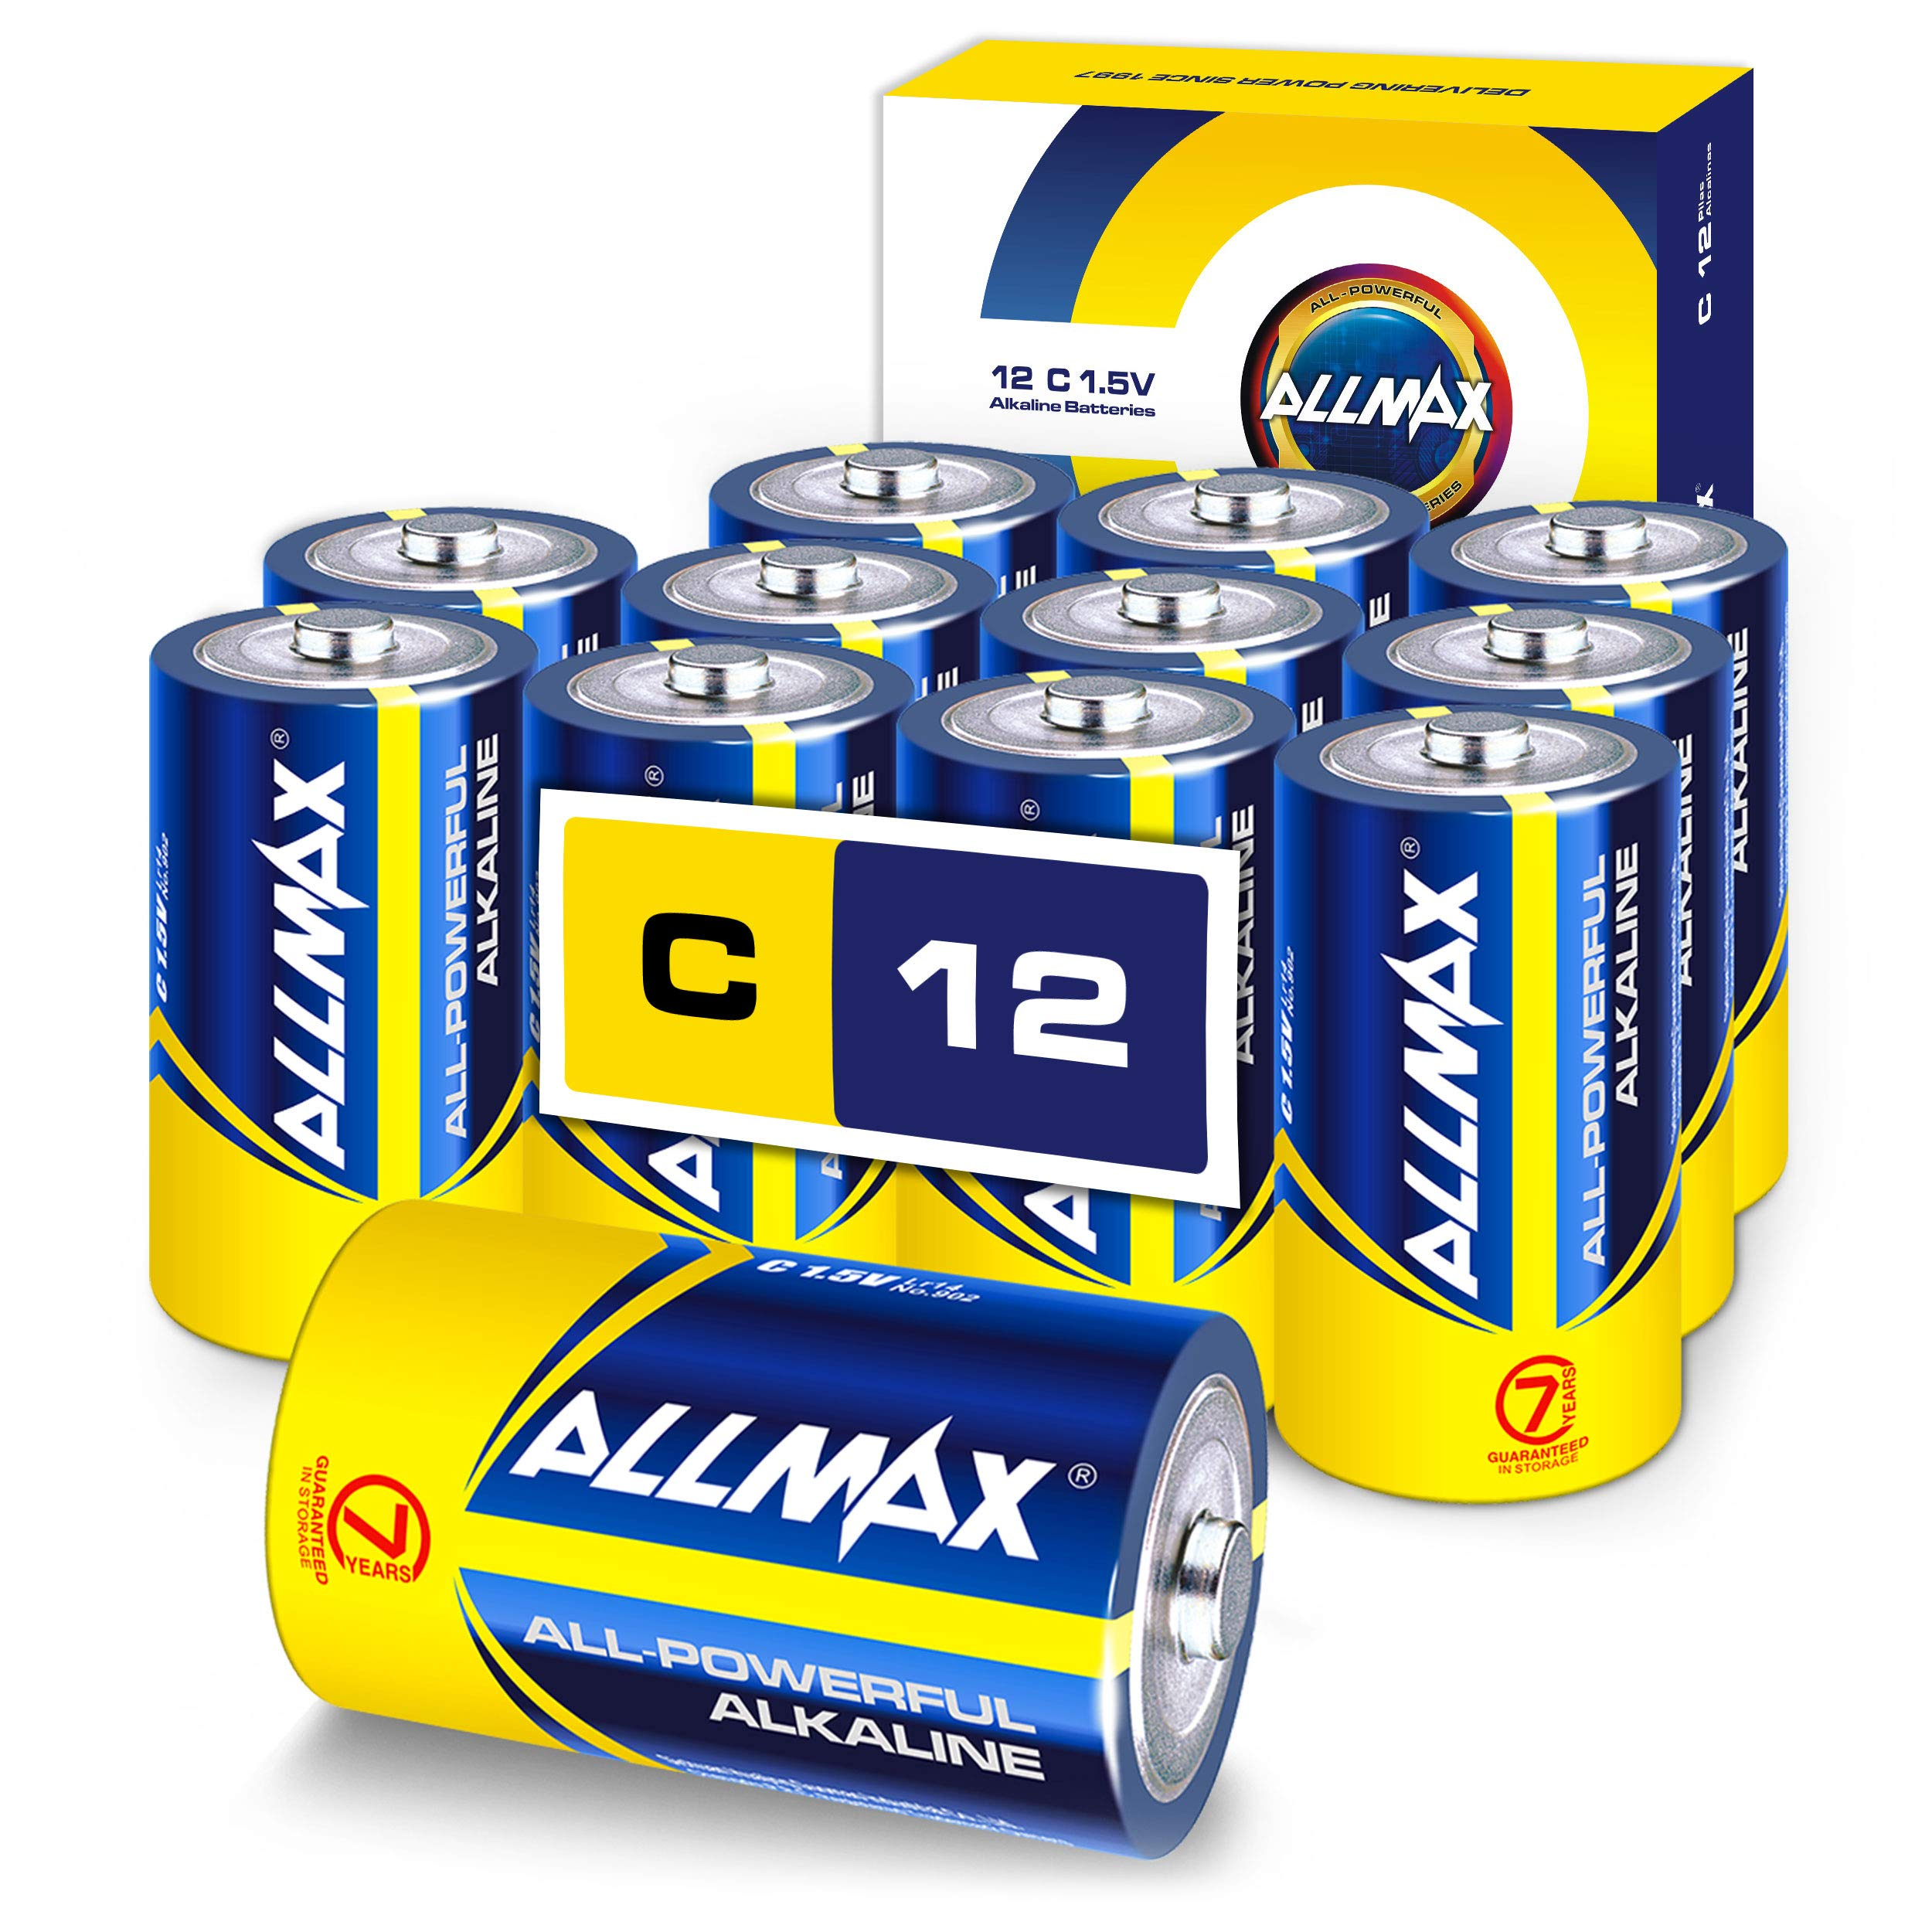 ALLMAX All-Powerful Alkaline Batteries - C (12-Pack) - Premium Grade, Ultra Long Lasting and Leak-Proof with EnergyCircle Technology (1.5 Volt)